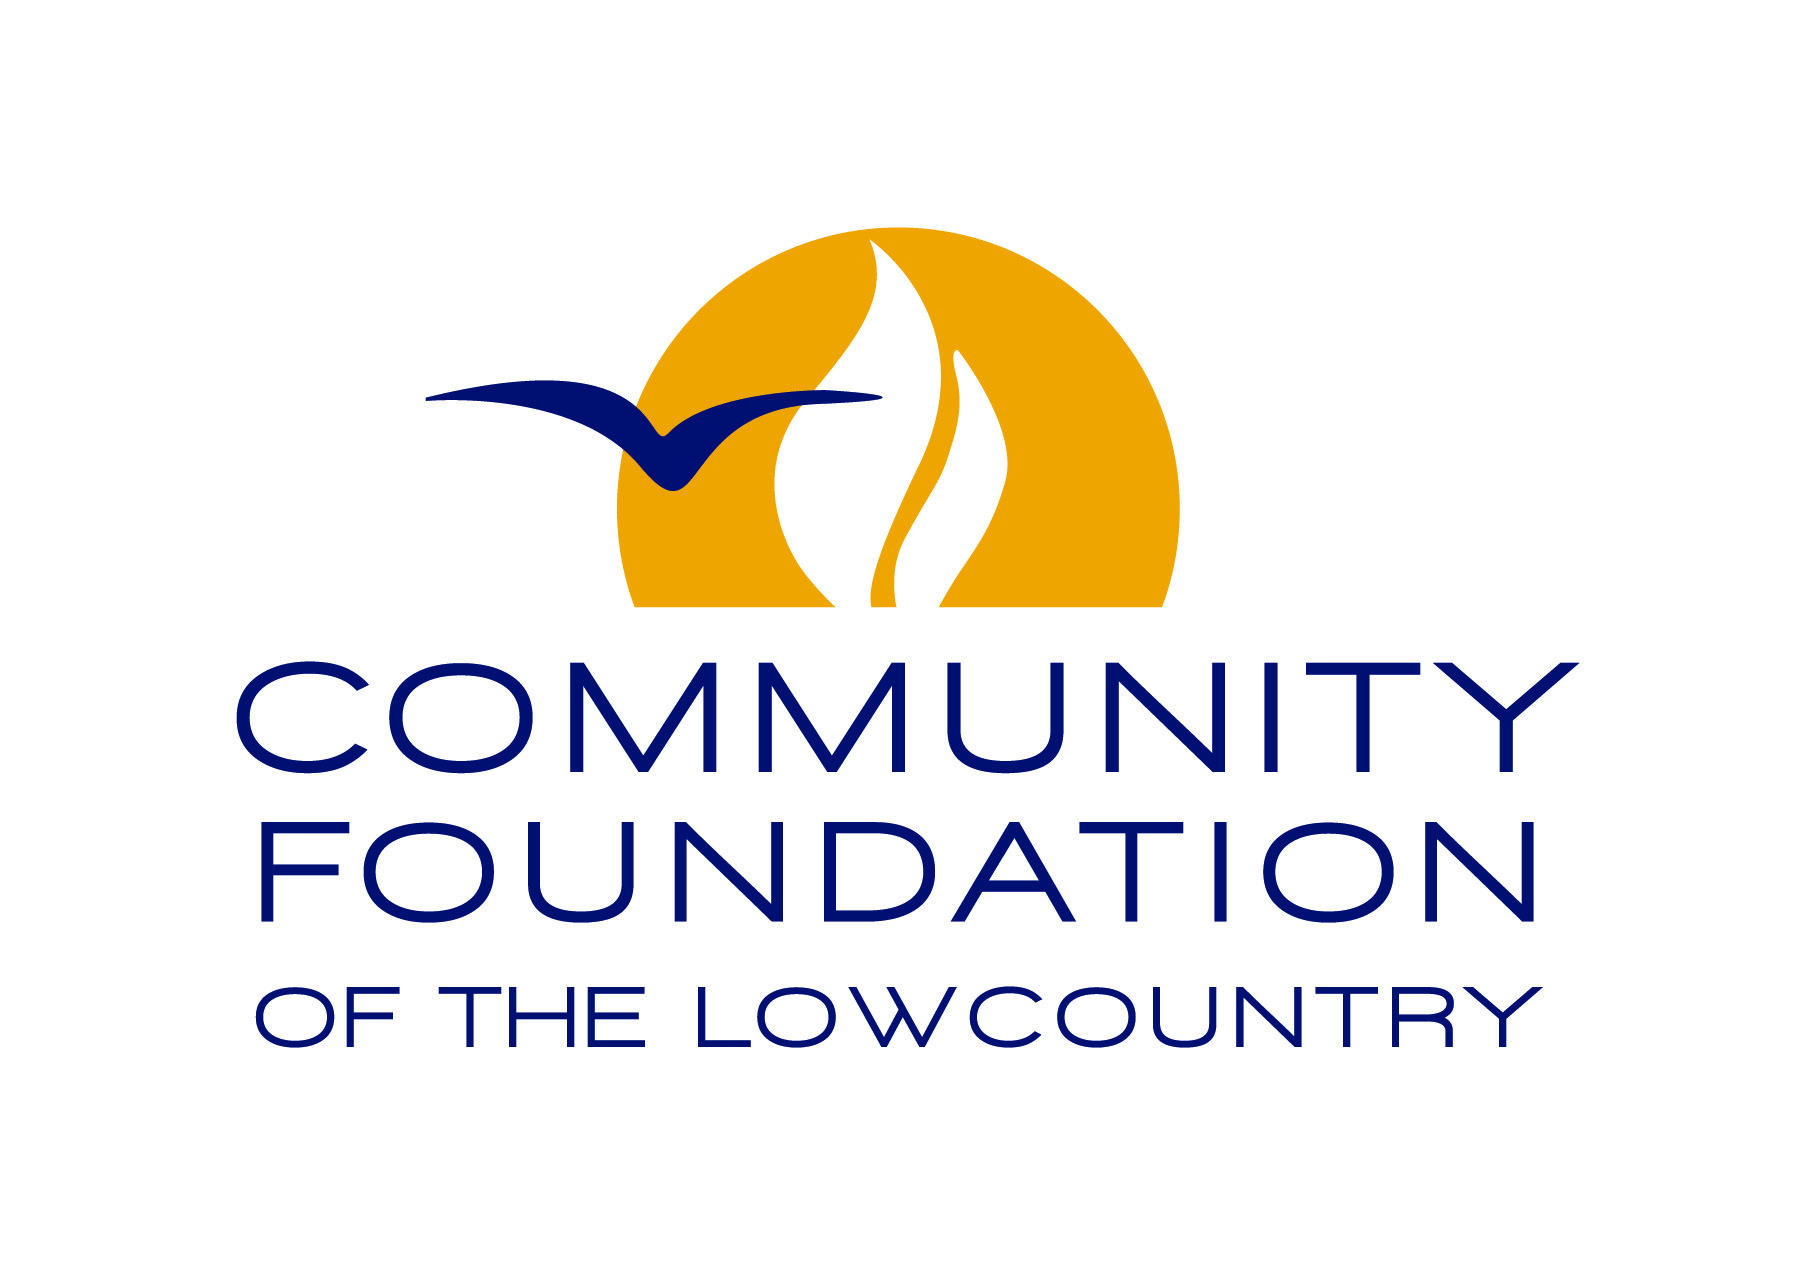 Community Foundation of the Lowcountry.jpg